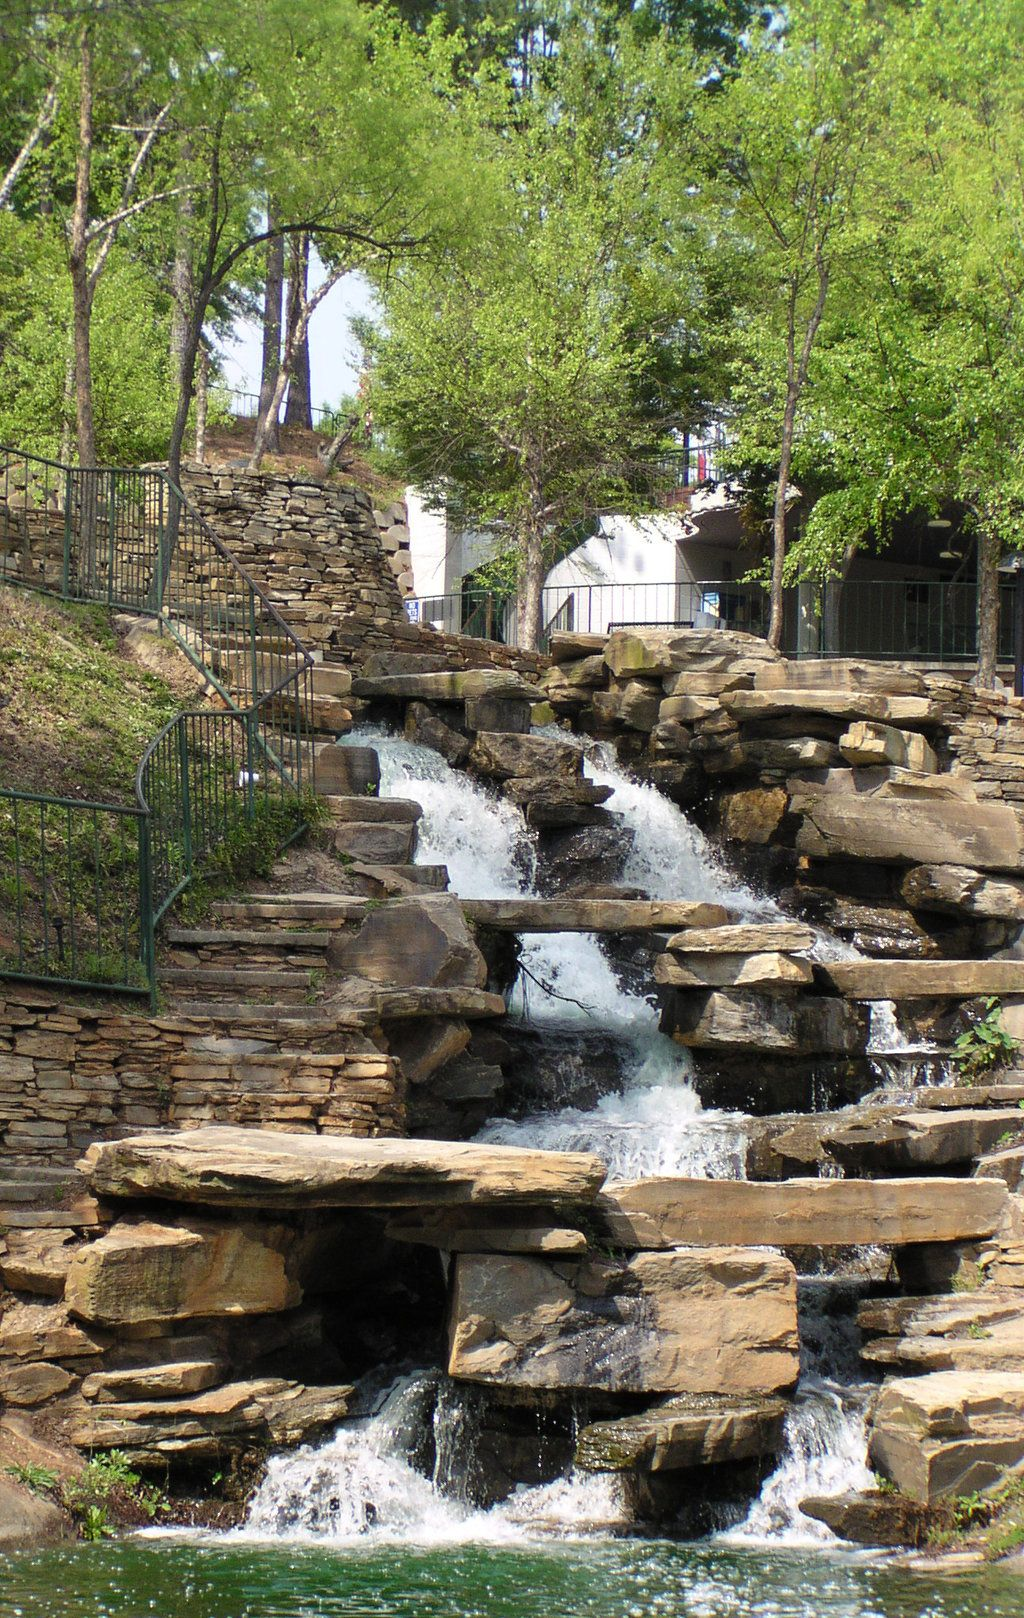 Finlay Park | Places to take photos in Columbia, SC in 2019